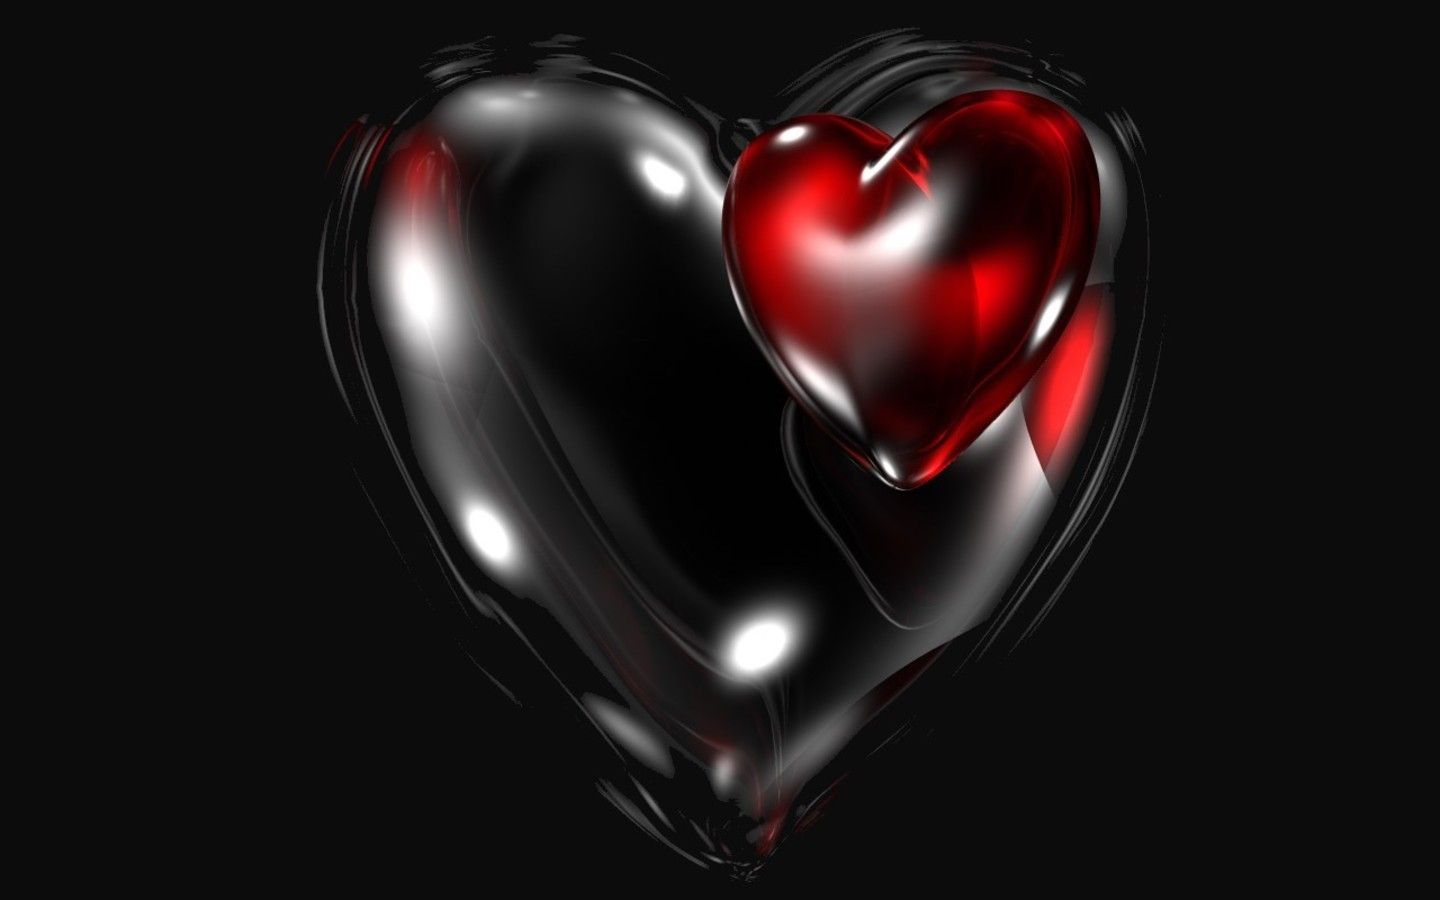 Red And Black Heart Wallpapers Top Free Red And Black Heart Backgrounds Wallpaperaccess